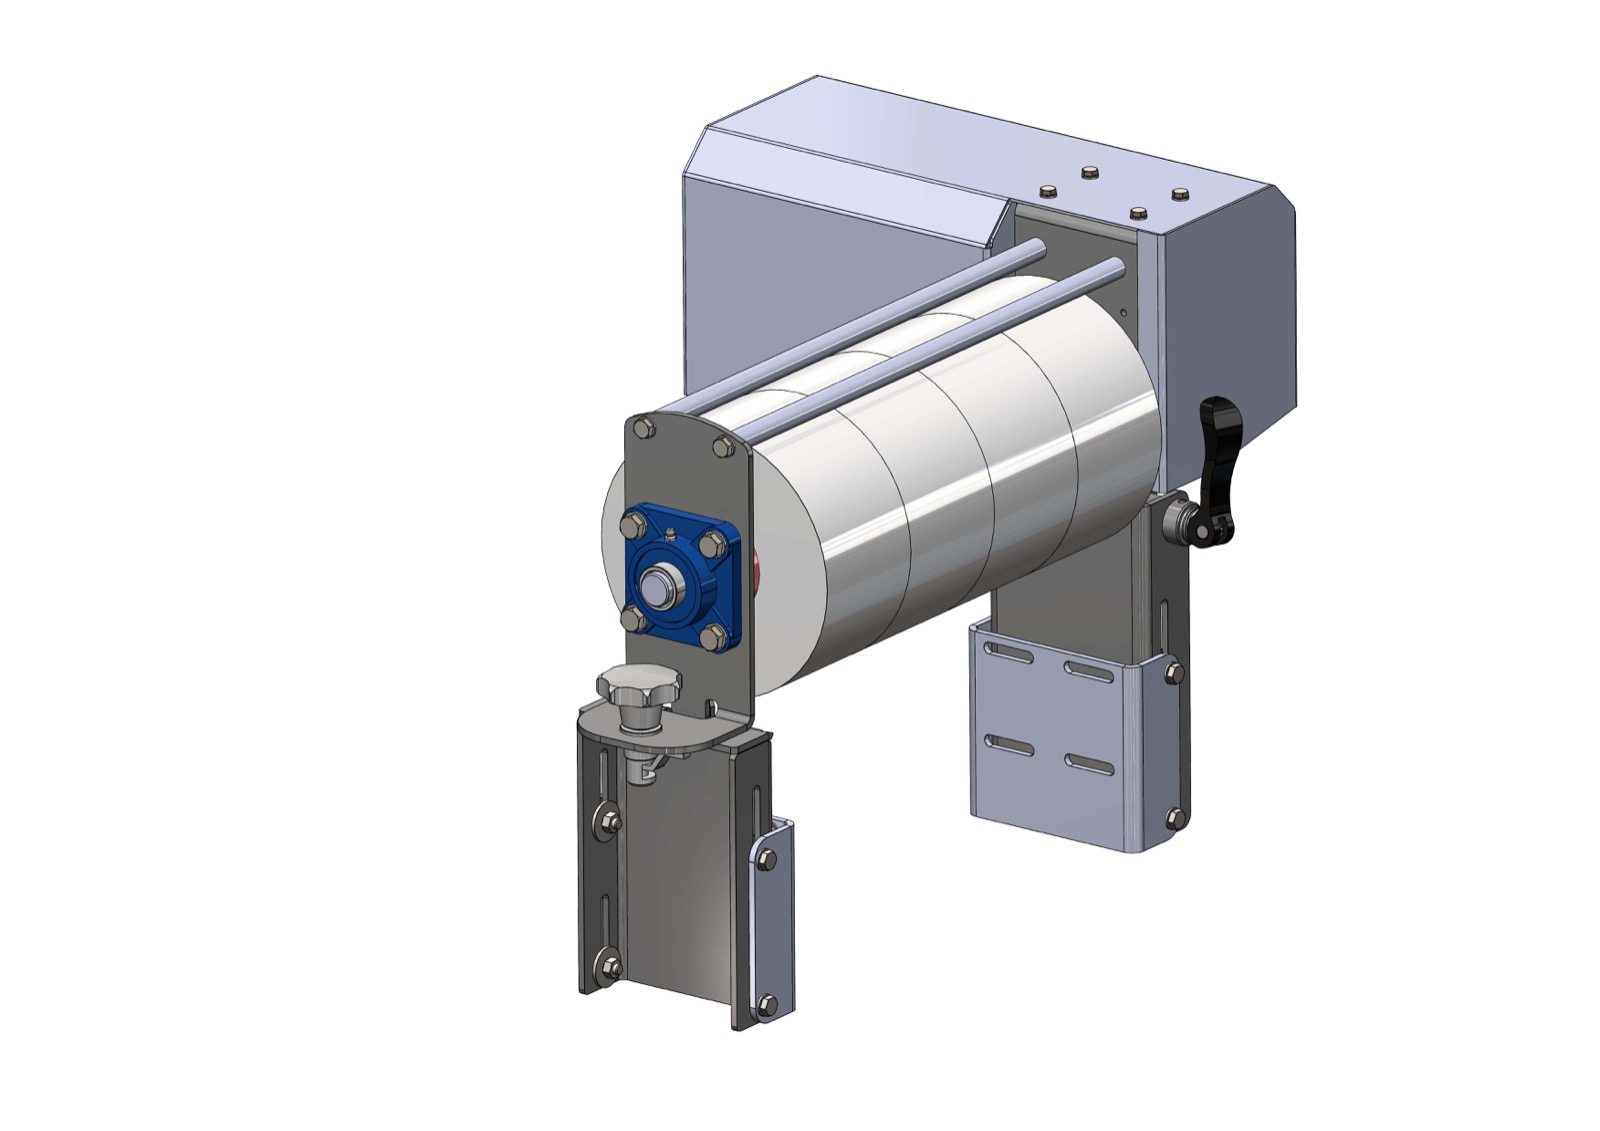 https://www.industrialproductsolutions.nl/wp-content/uploads/2021/05/WhatsApp-Image-2021-05-27-at-14.17.25-15.jpeg